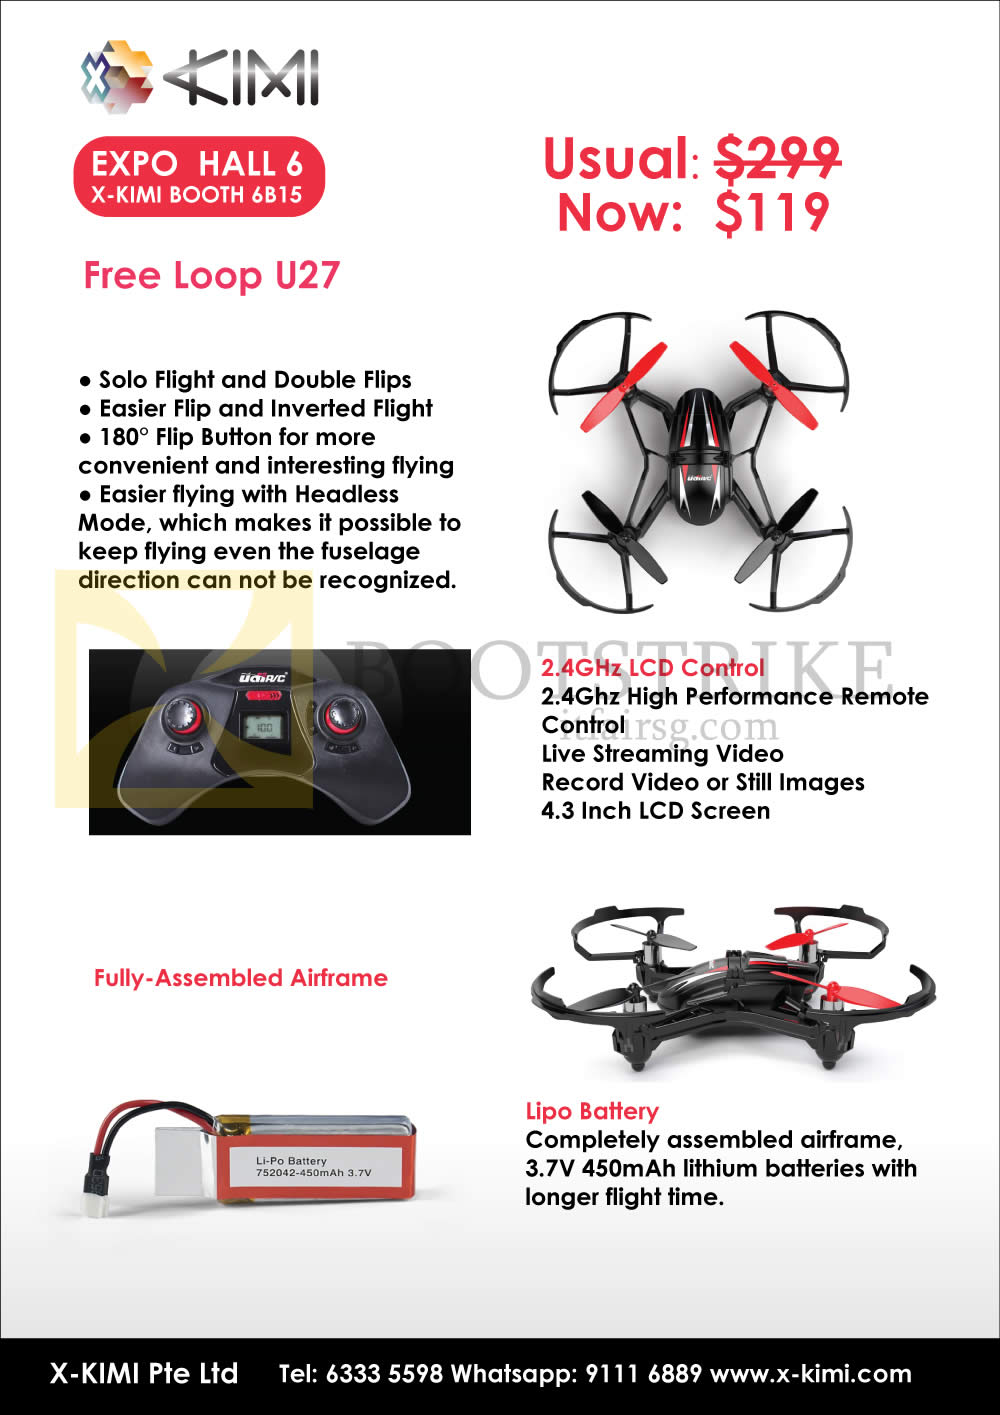 SITEX 2015 price list image brochure of X-Kimi Free Loop U27, 2.4GHz LCD Control, Fully Assembled Airframe, Lipo Battery